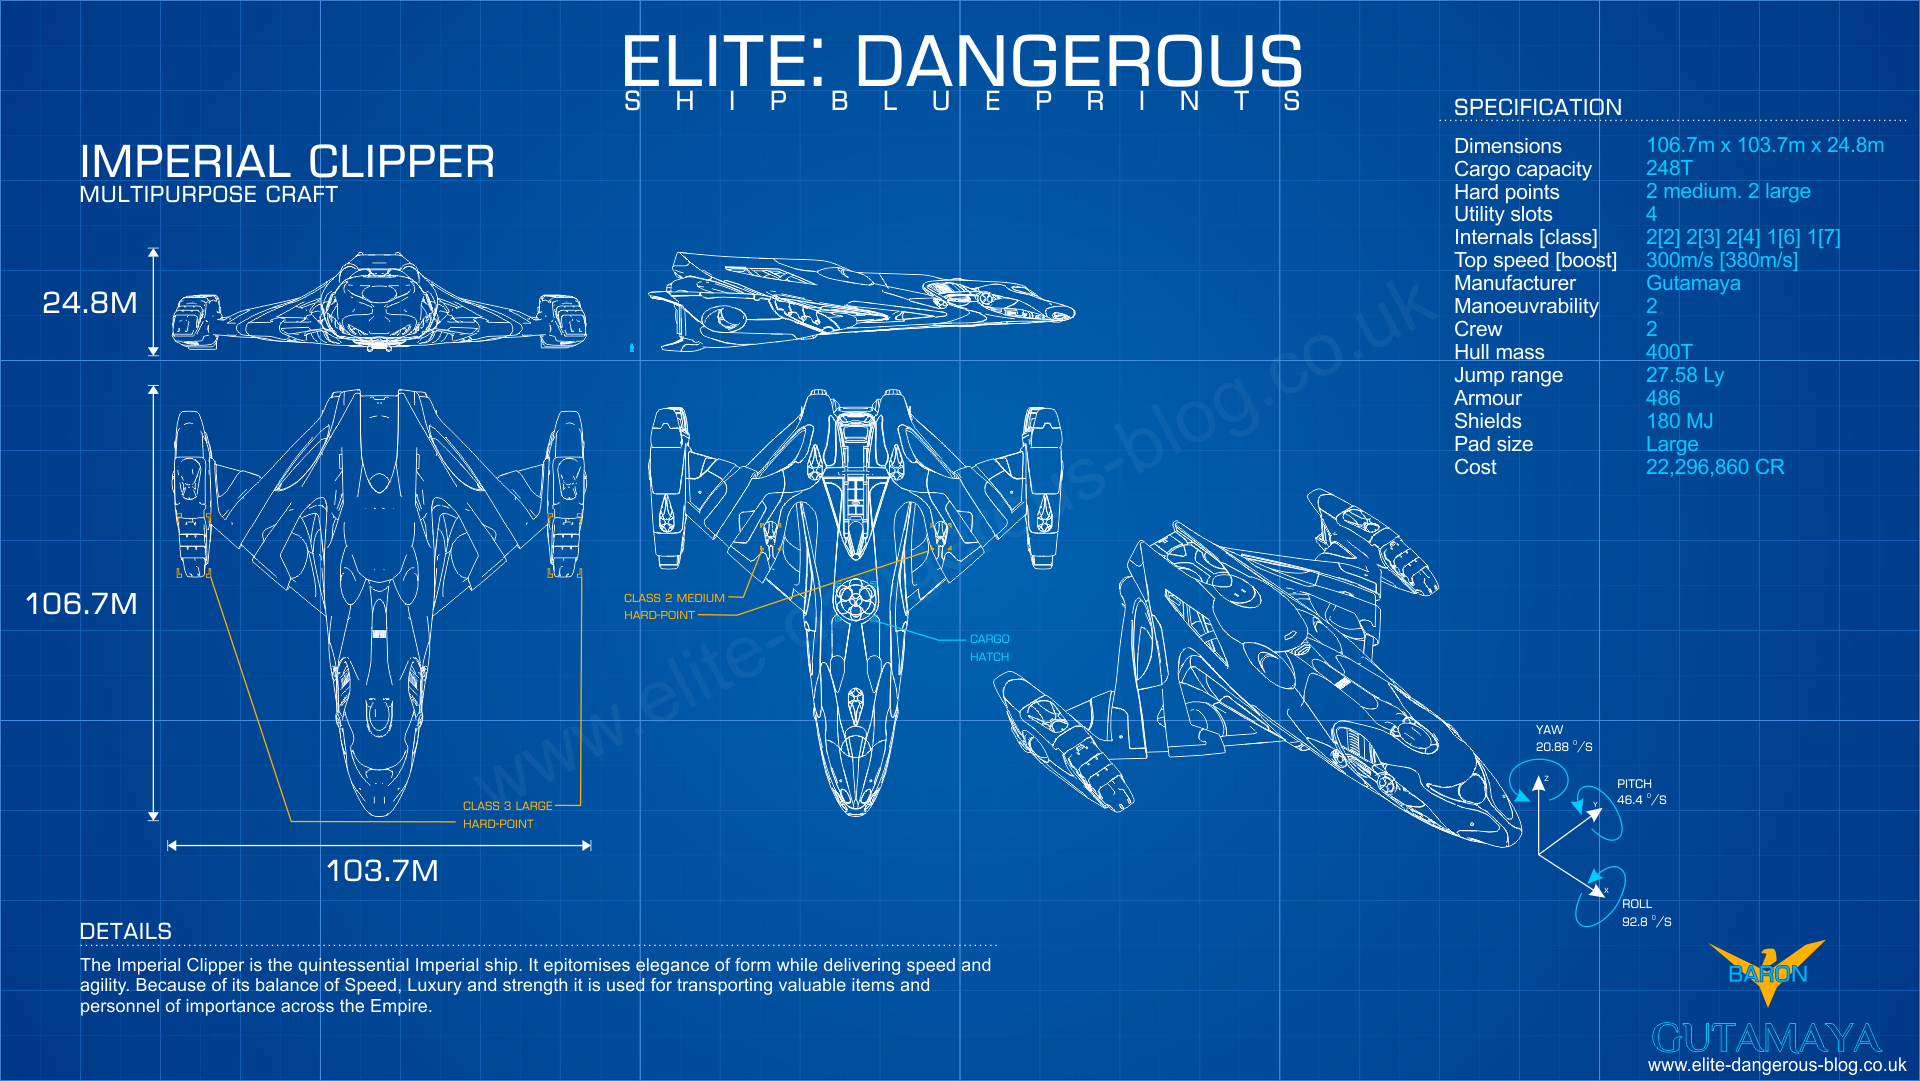 Image bp imperial clipperg elite dangerous wiki fandom current 1856 november 2 2016 malvernweather Choice Image